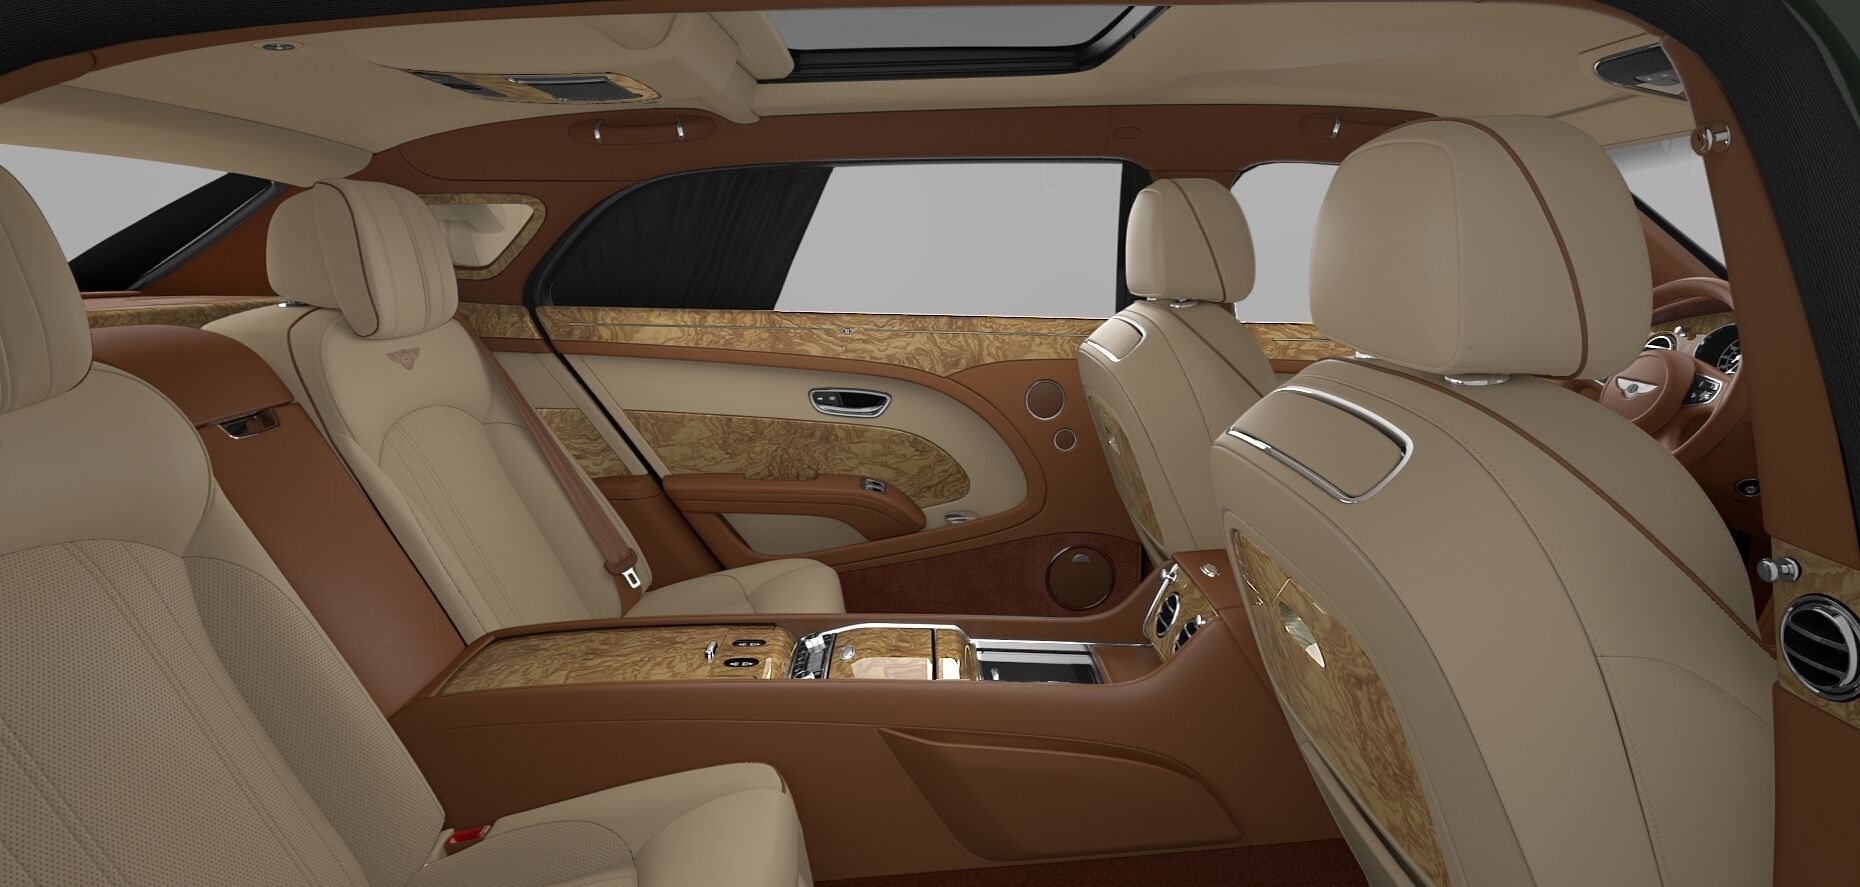 Bentley Car Configurator Bentley car, Bentley, Car